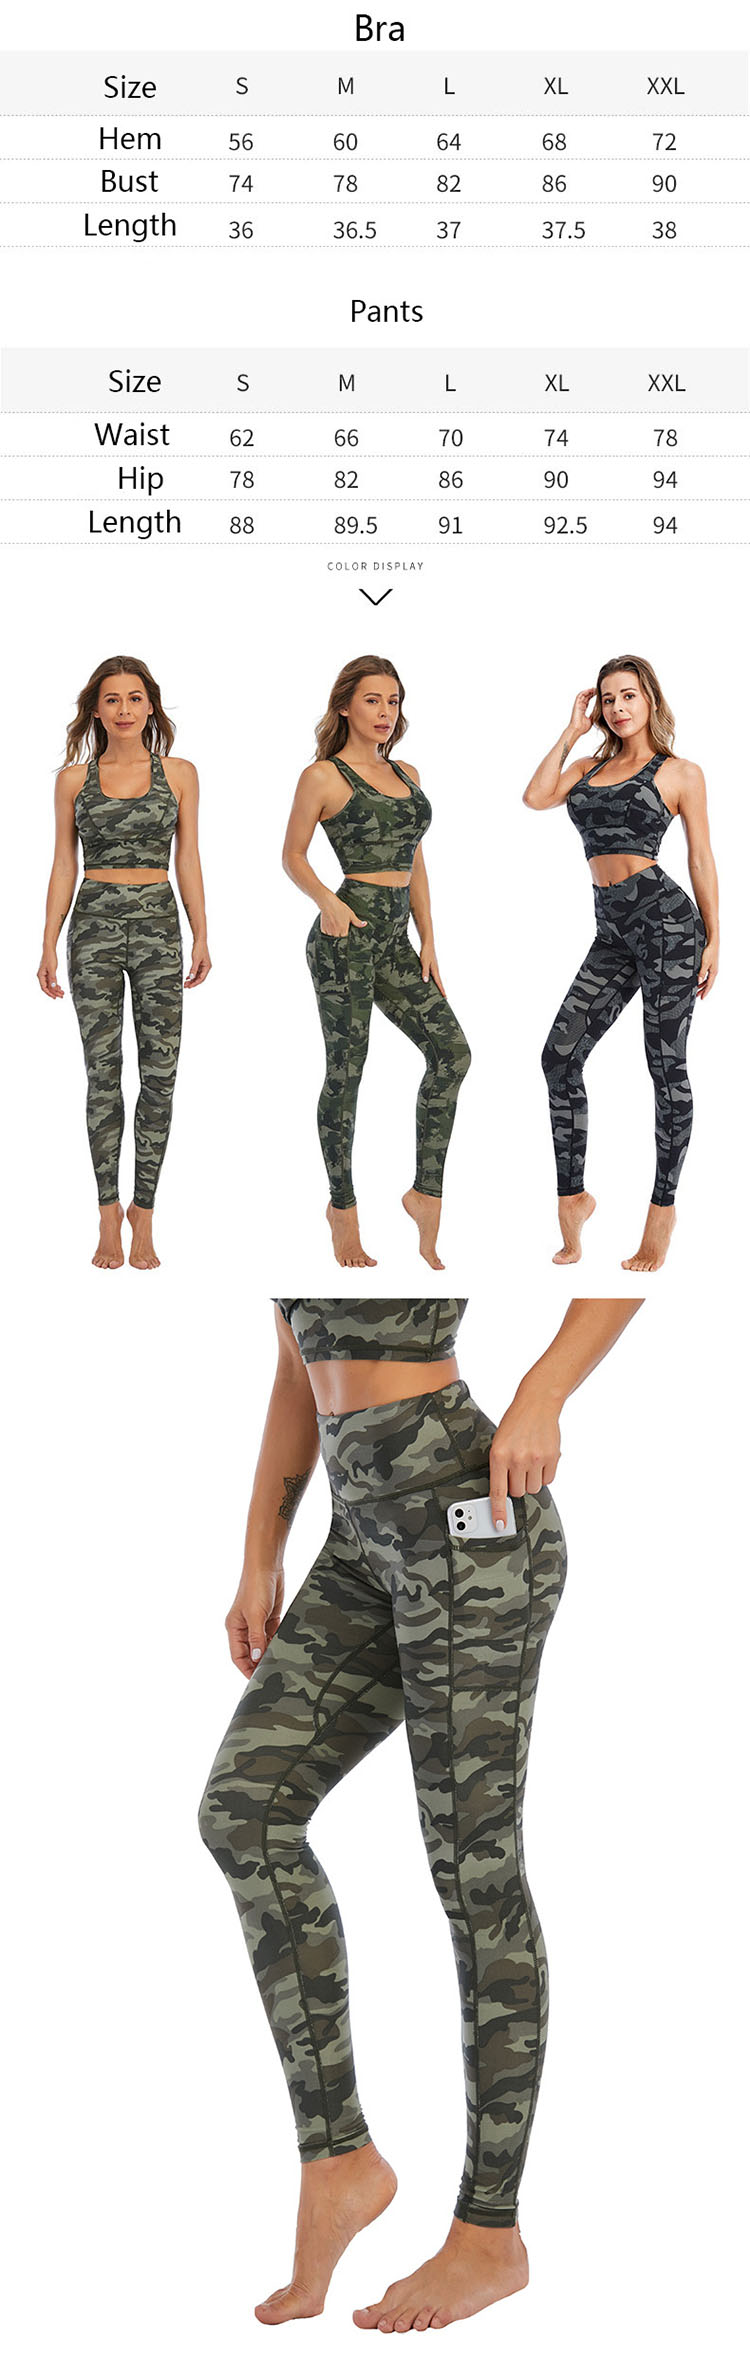 Camouflage workout leggings is still a fashion vane in the 2021 show